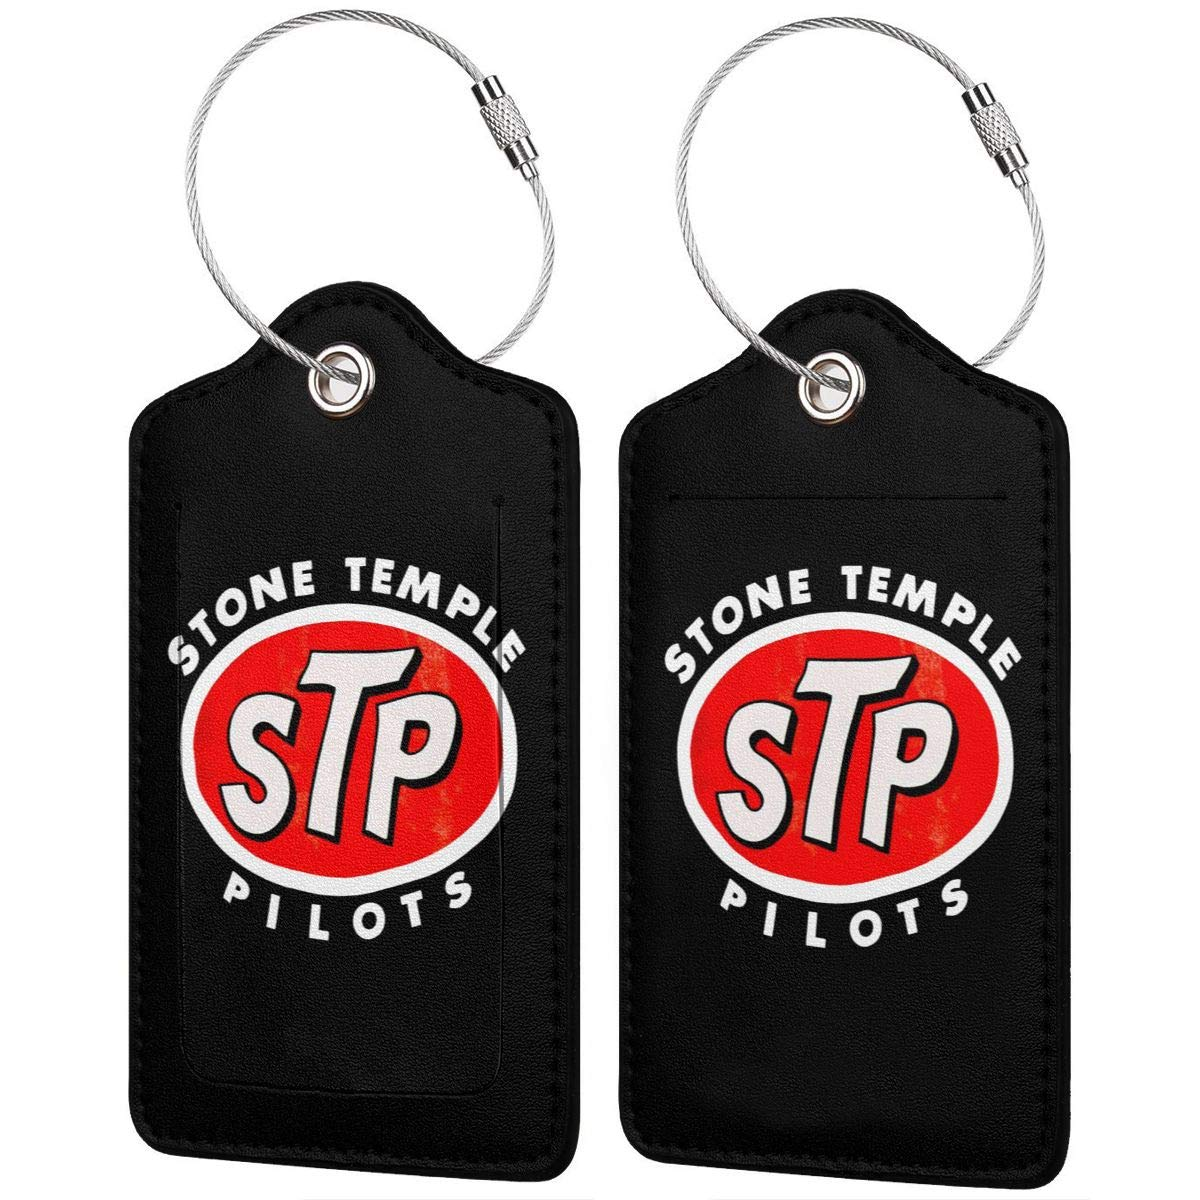 Stone Temple Pilots Logo Leather Luggage Tag Travel ID Label For Baggage Suitcase